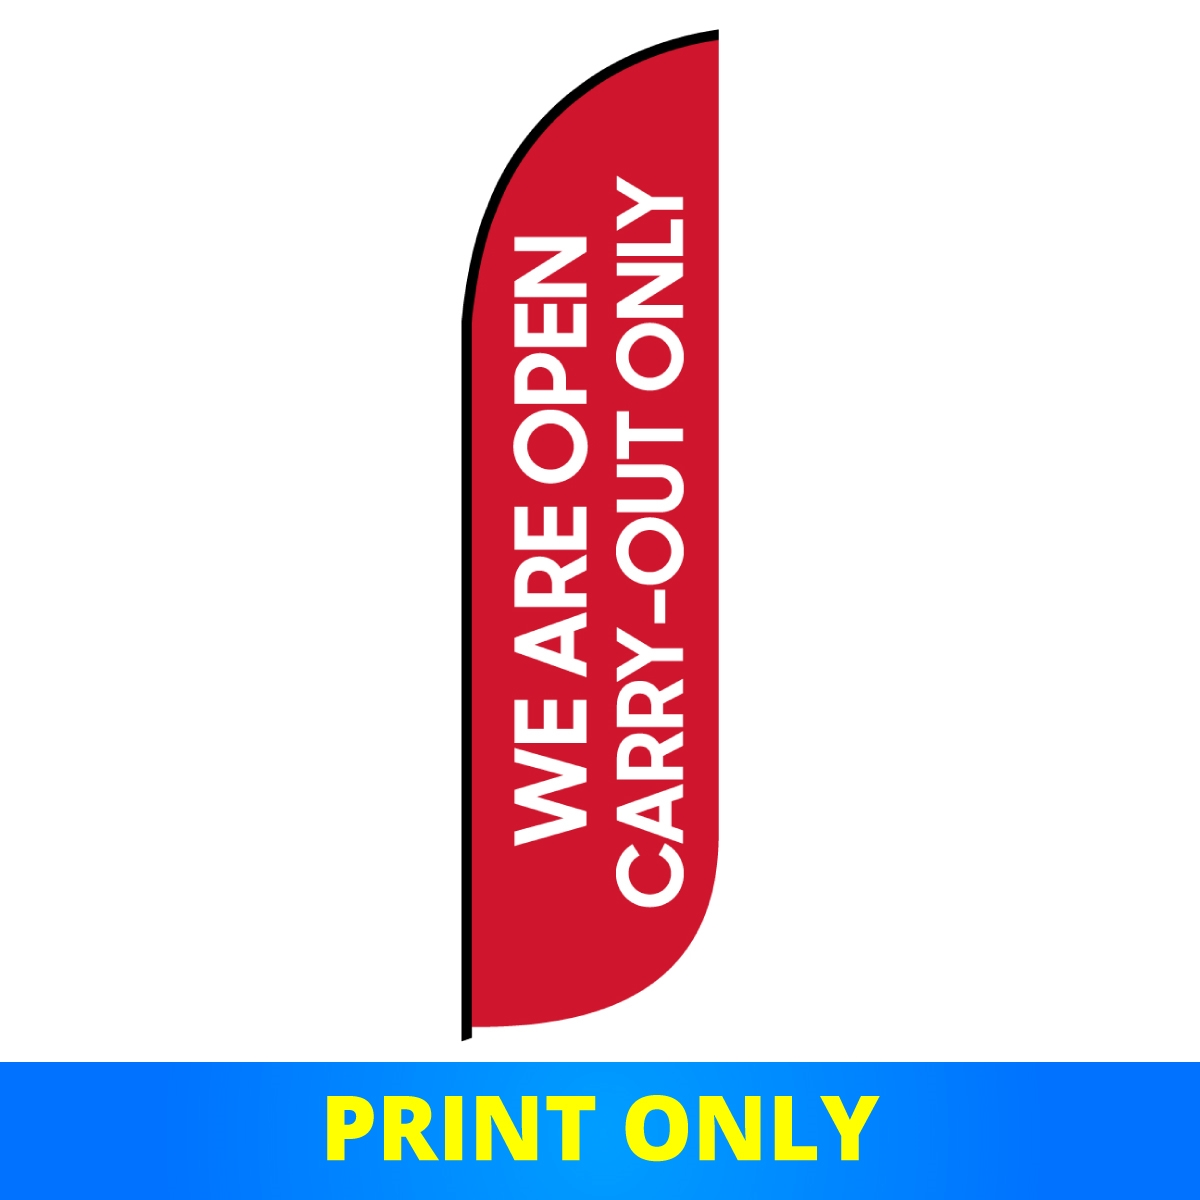 We Are Open - Carry-Out Only | 8.5' Stock Single-Sided Flag (PRINT ONLY)